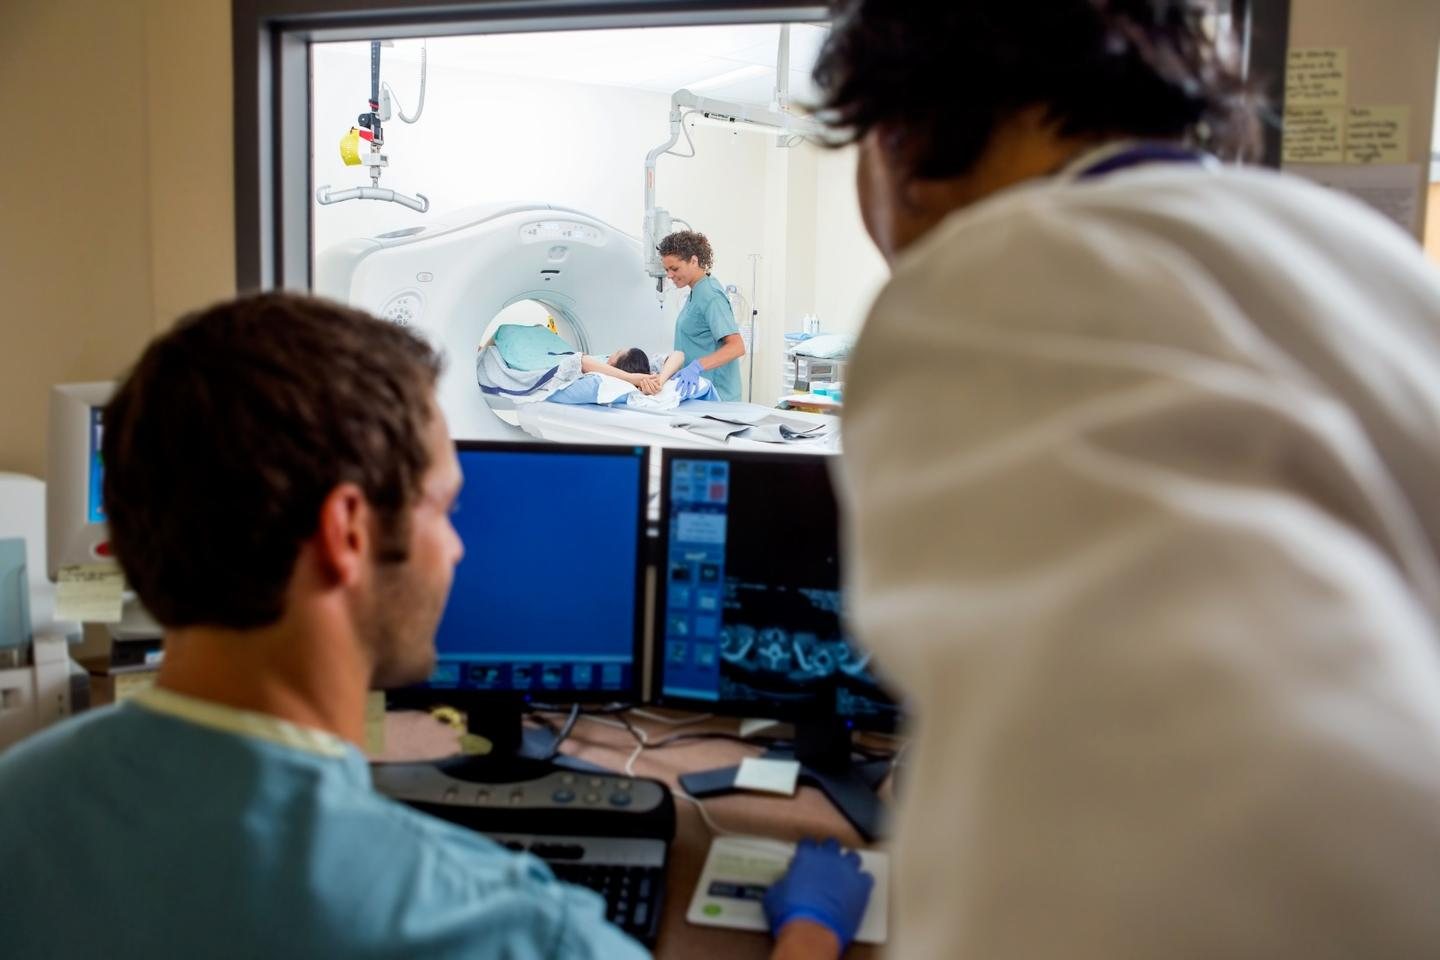 A new AI system can effectively predict those at the highest risk of dying from ovarian cancer with greater accuracy than existing methods, such as CT scans